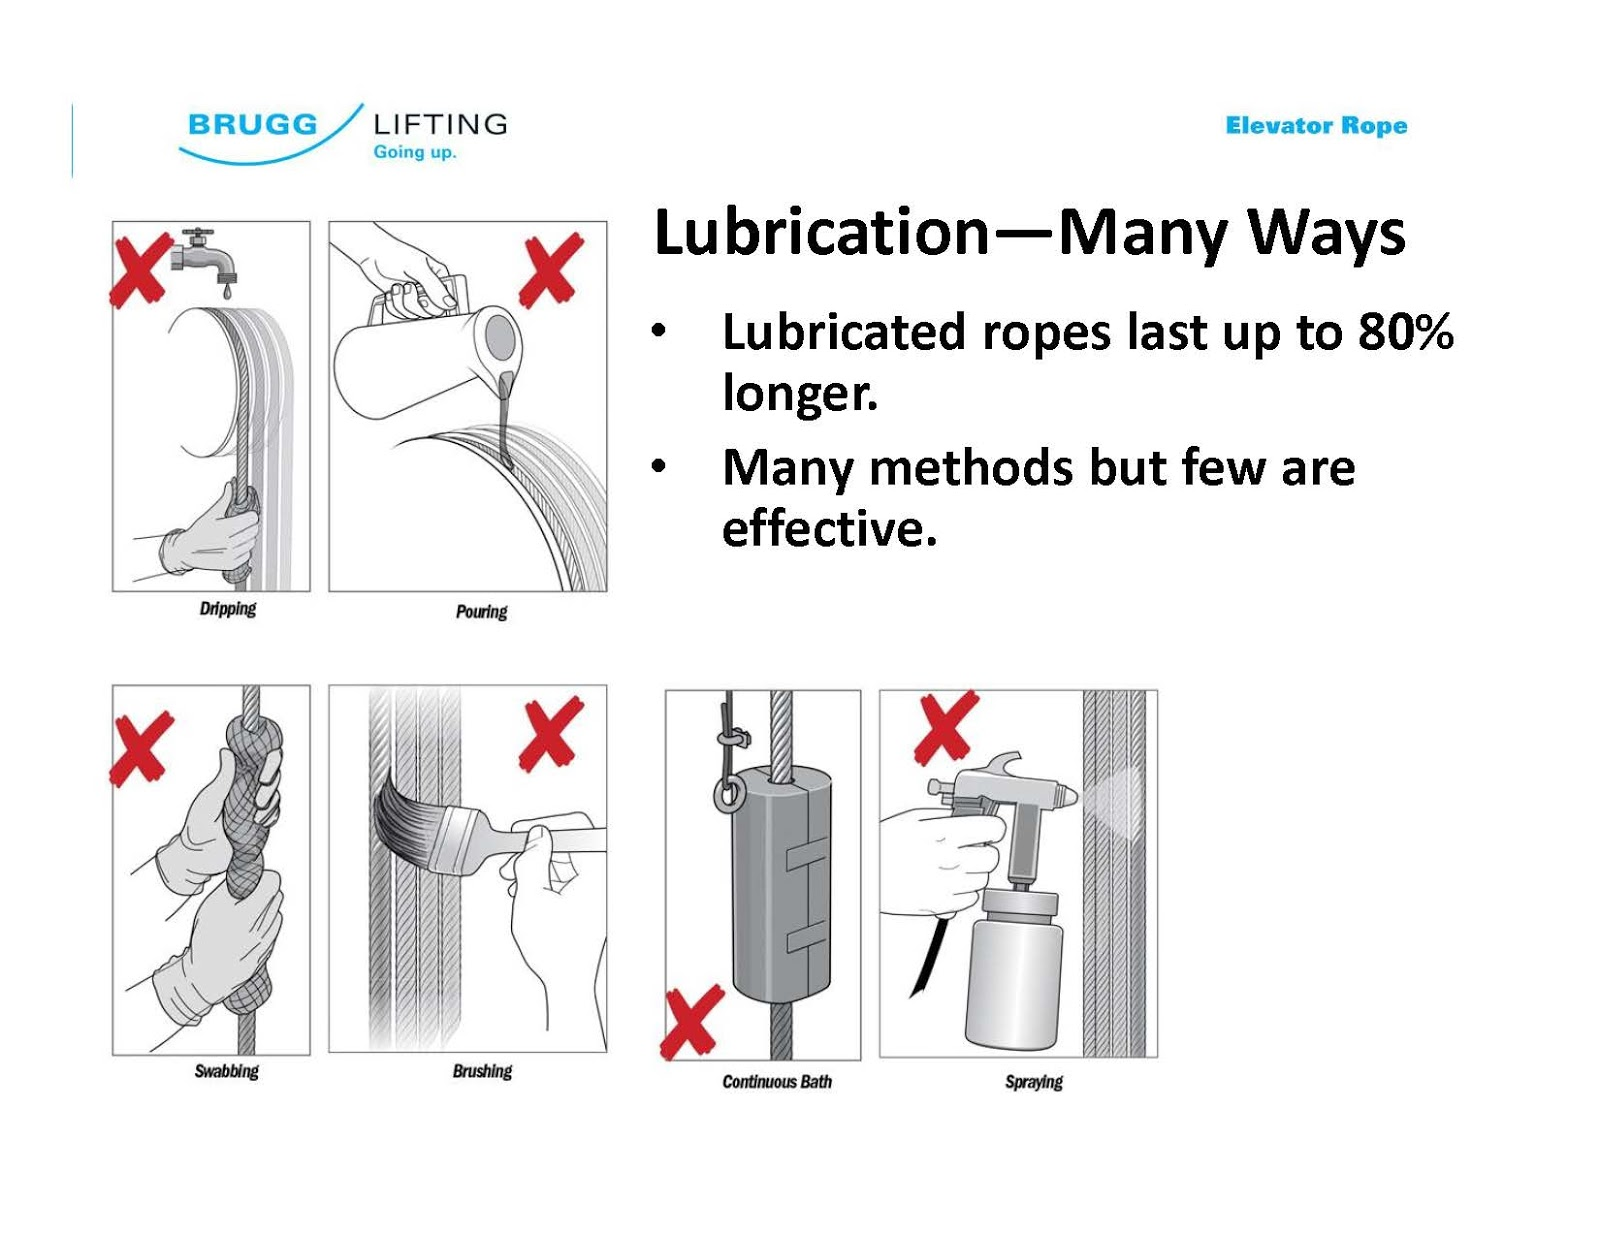 How to use lube